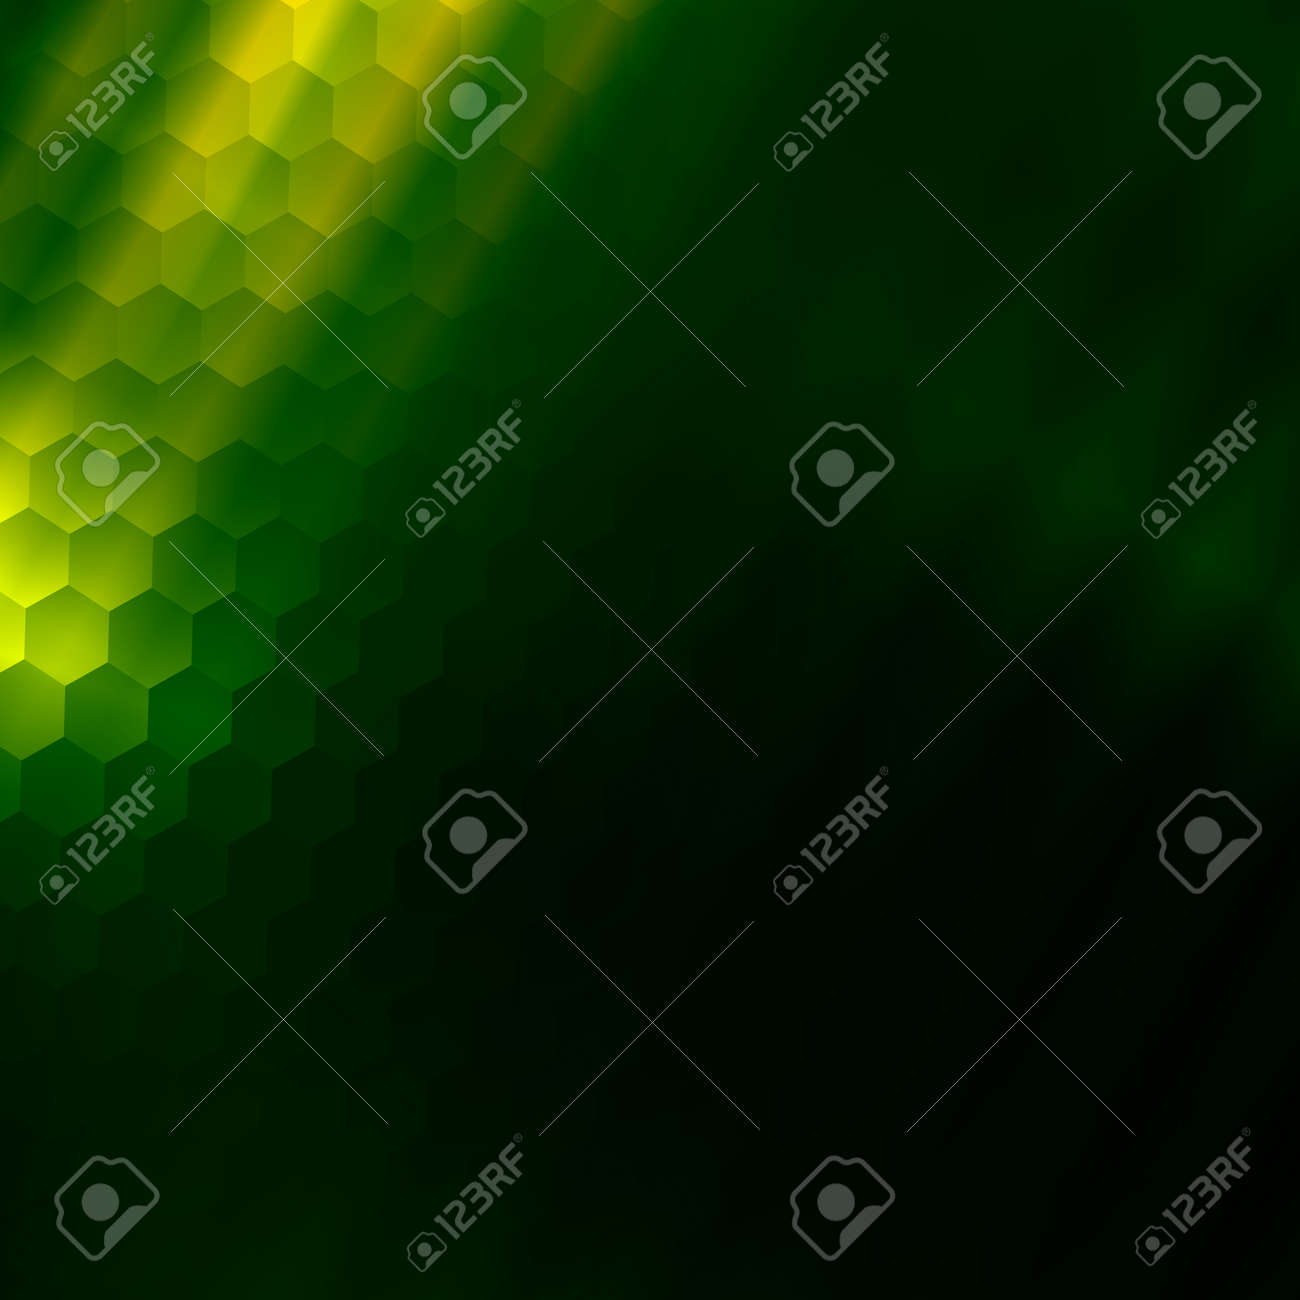 Green Texture Backdrop. Art Illustration. Graphic Color Background ...